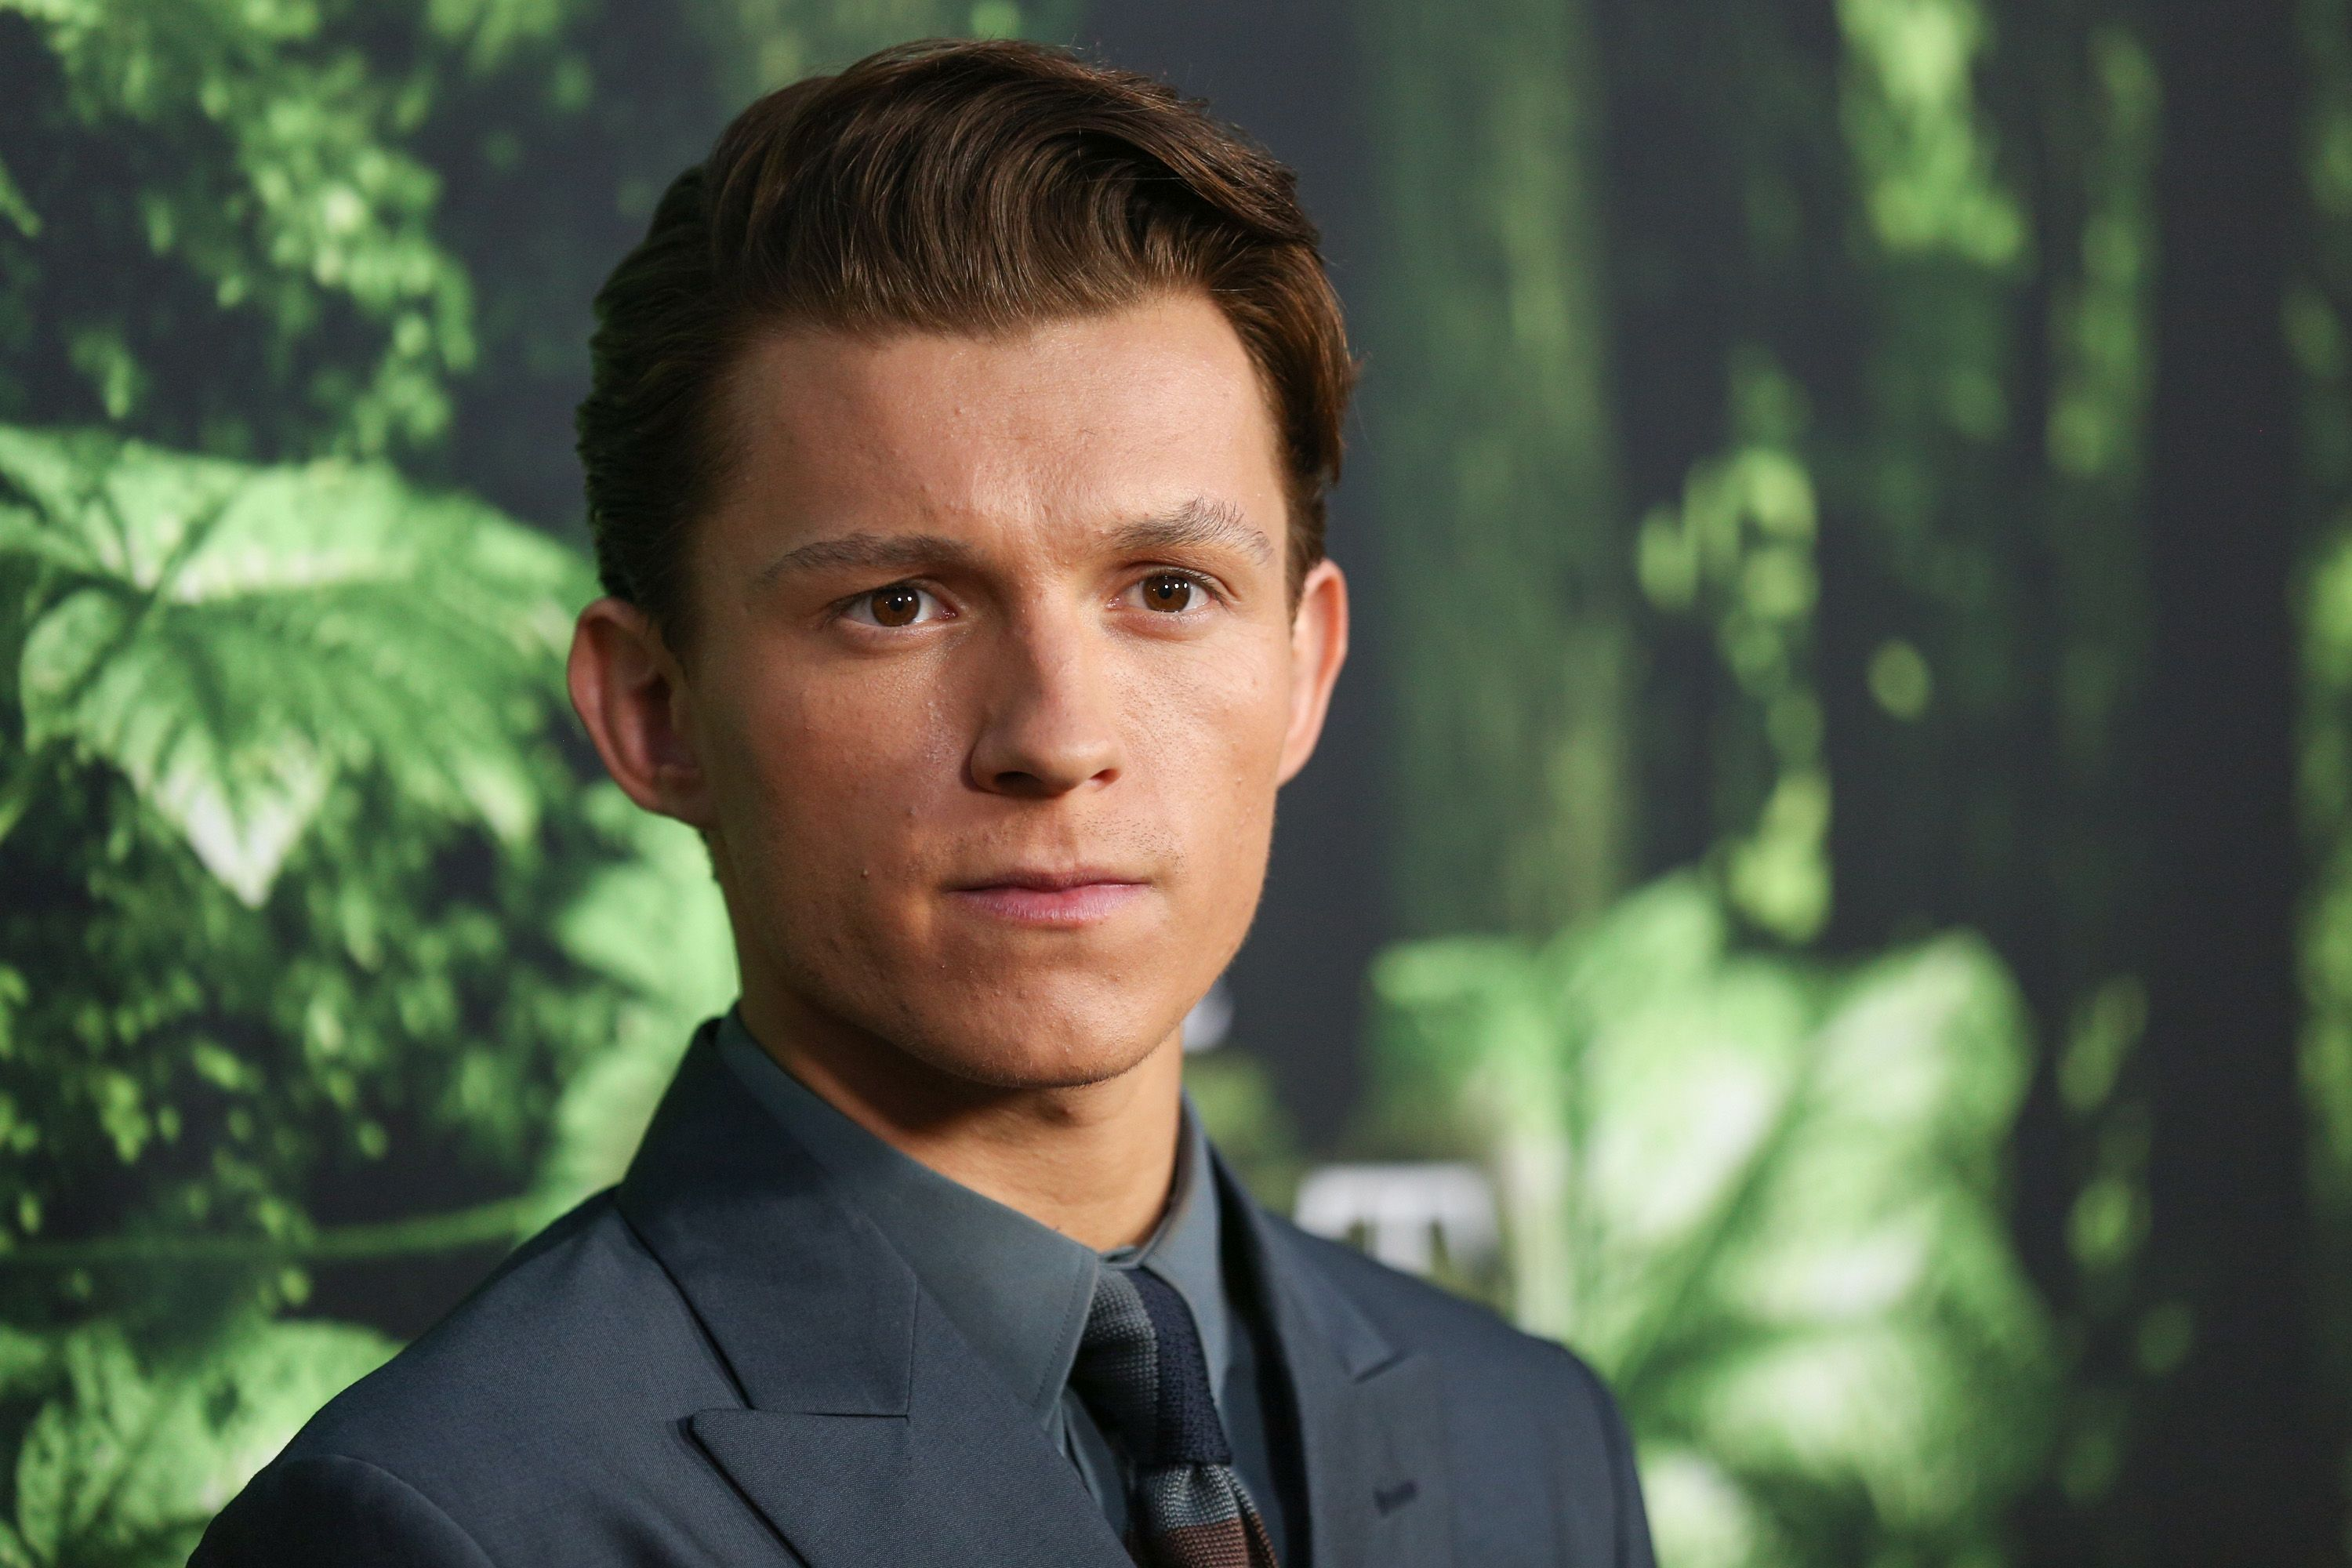 Fans Have Gathered Together to Mourn The Loss of Tom Holland's Locks